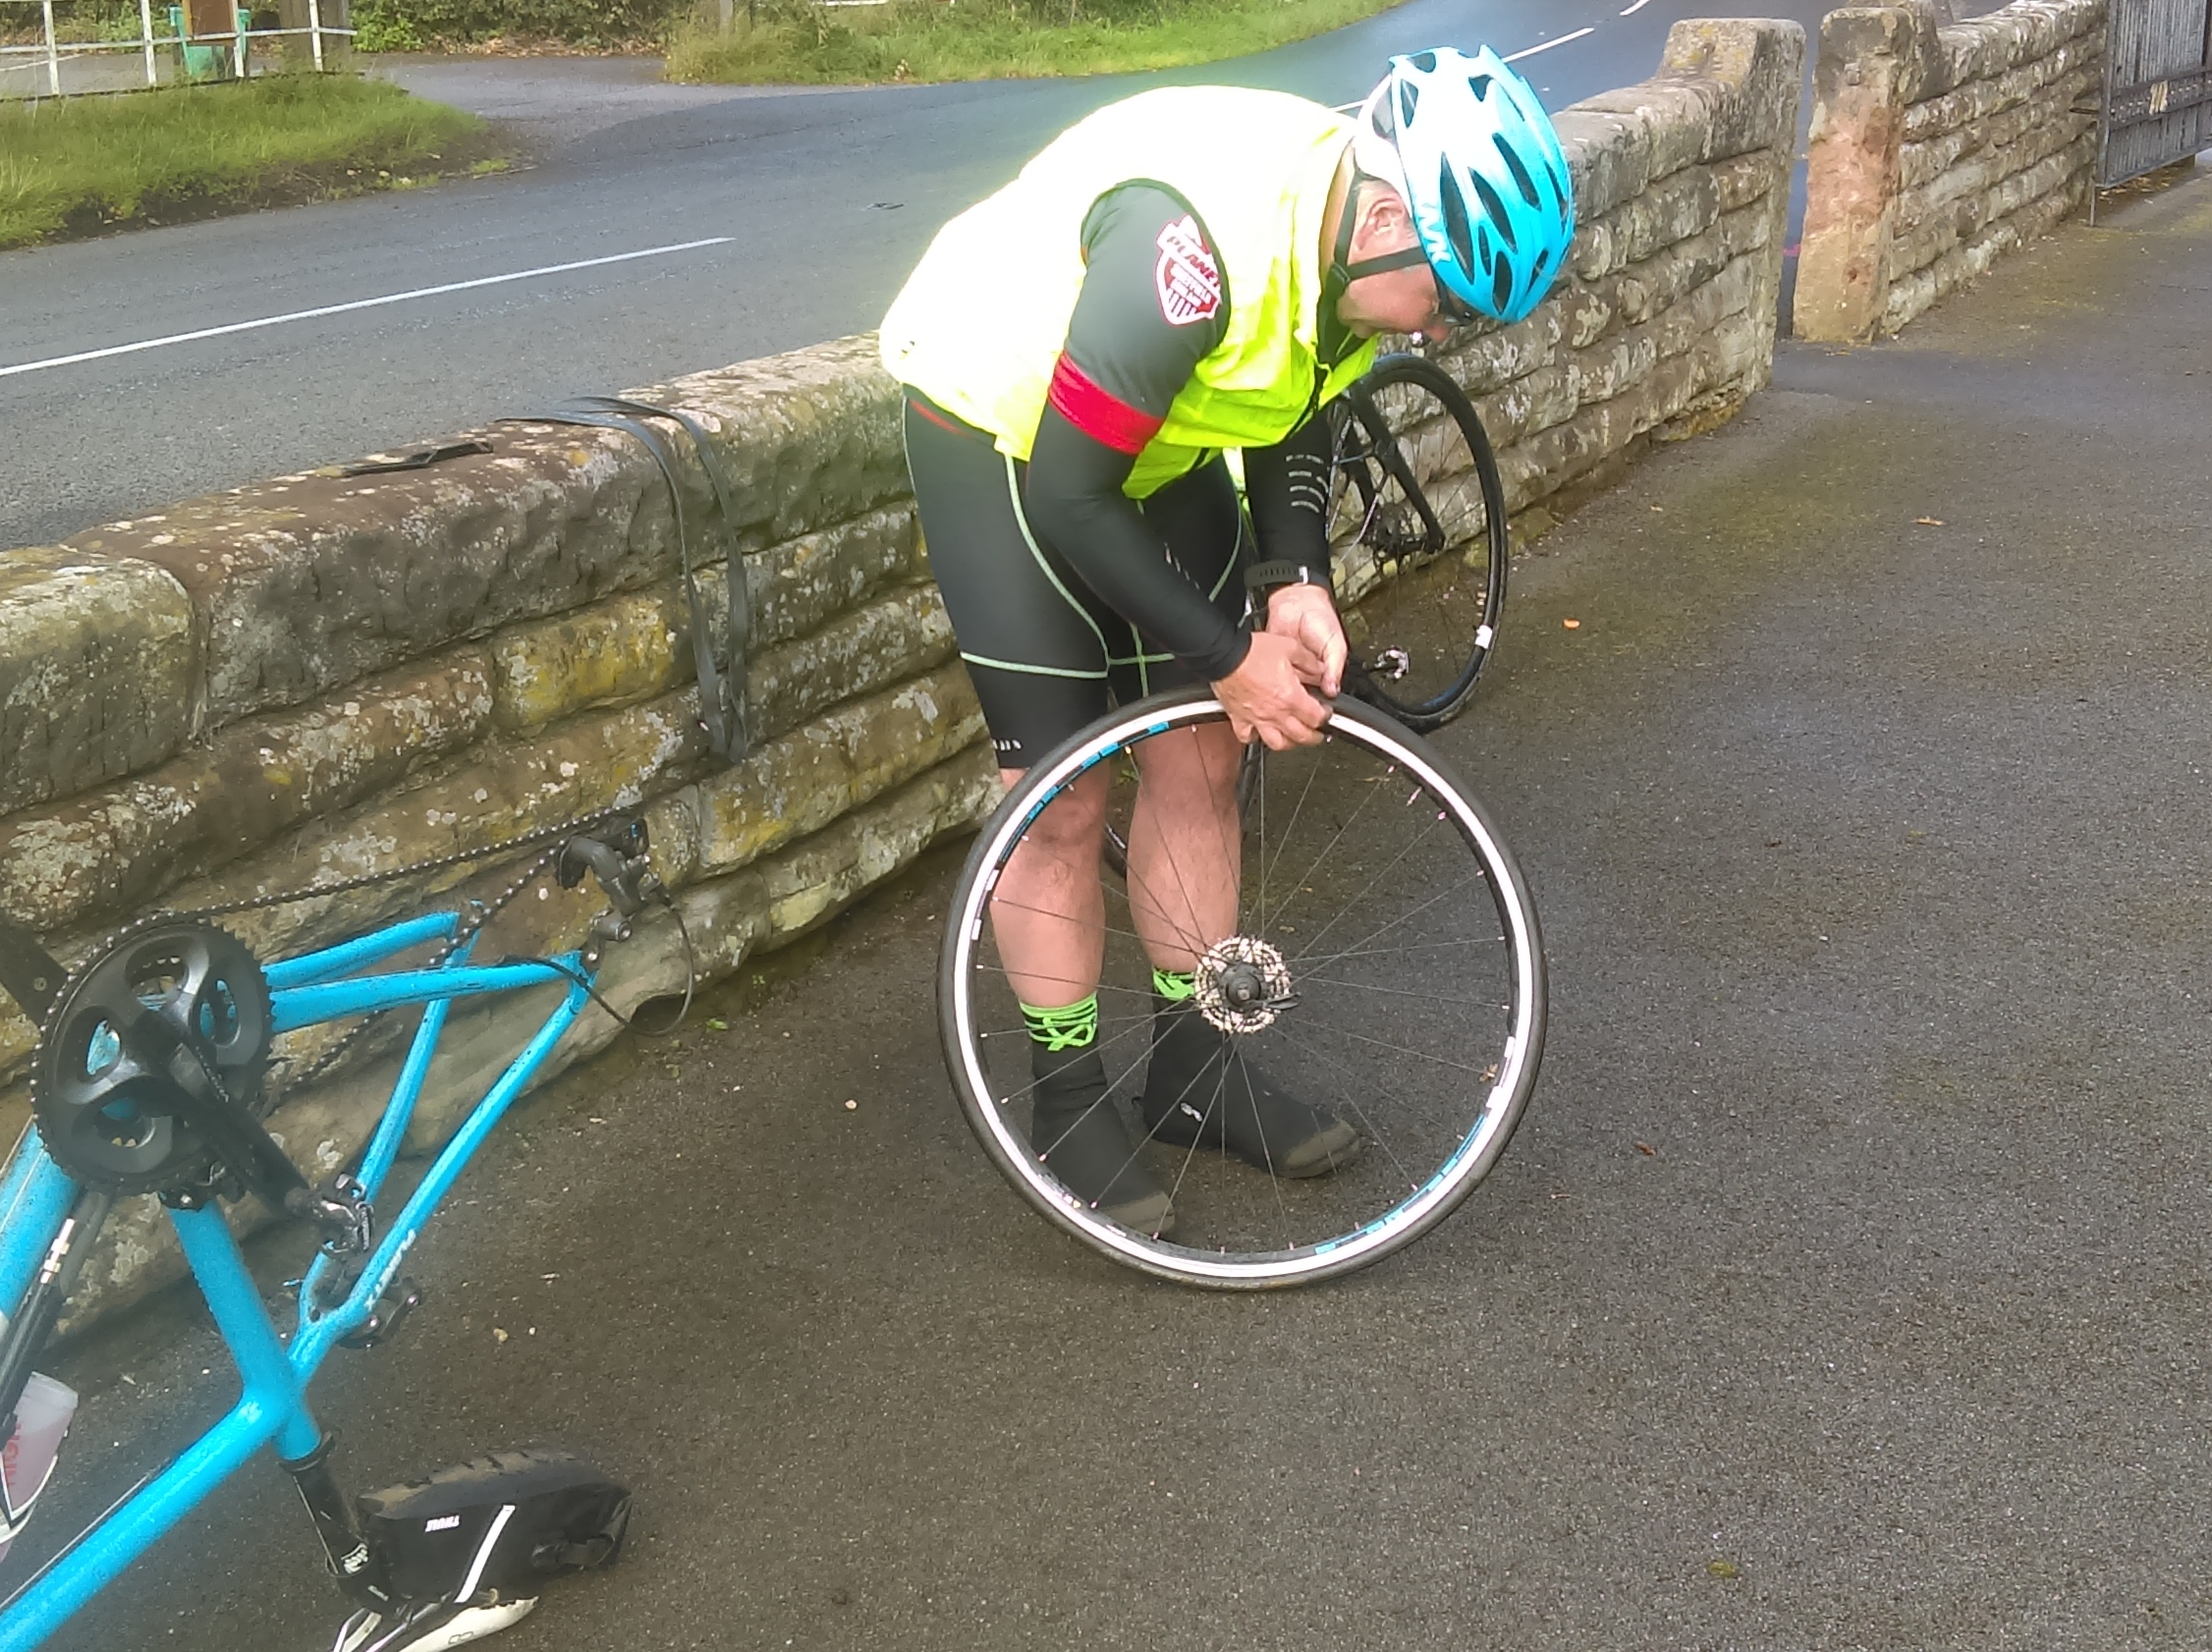 Mark tackling the puncture